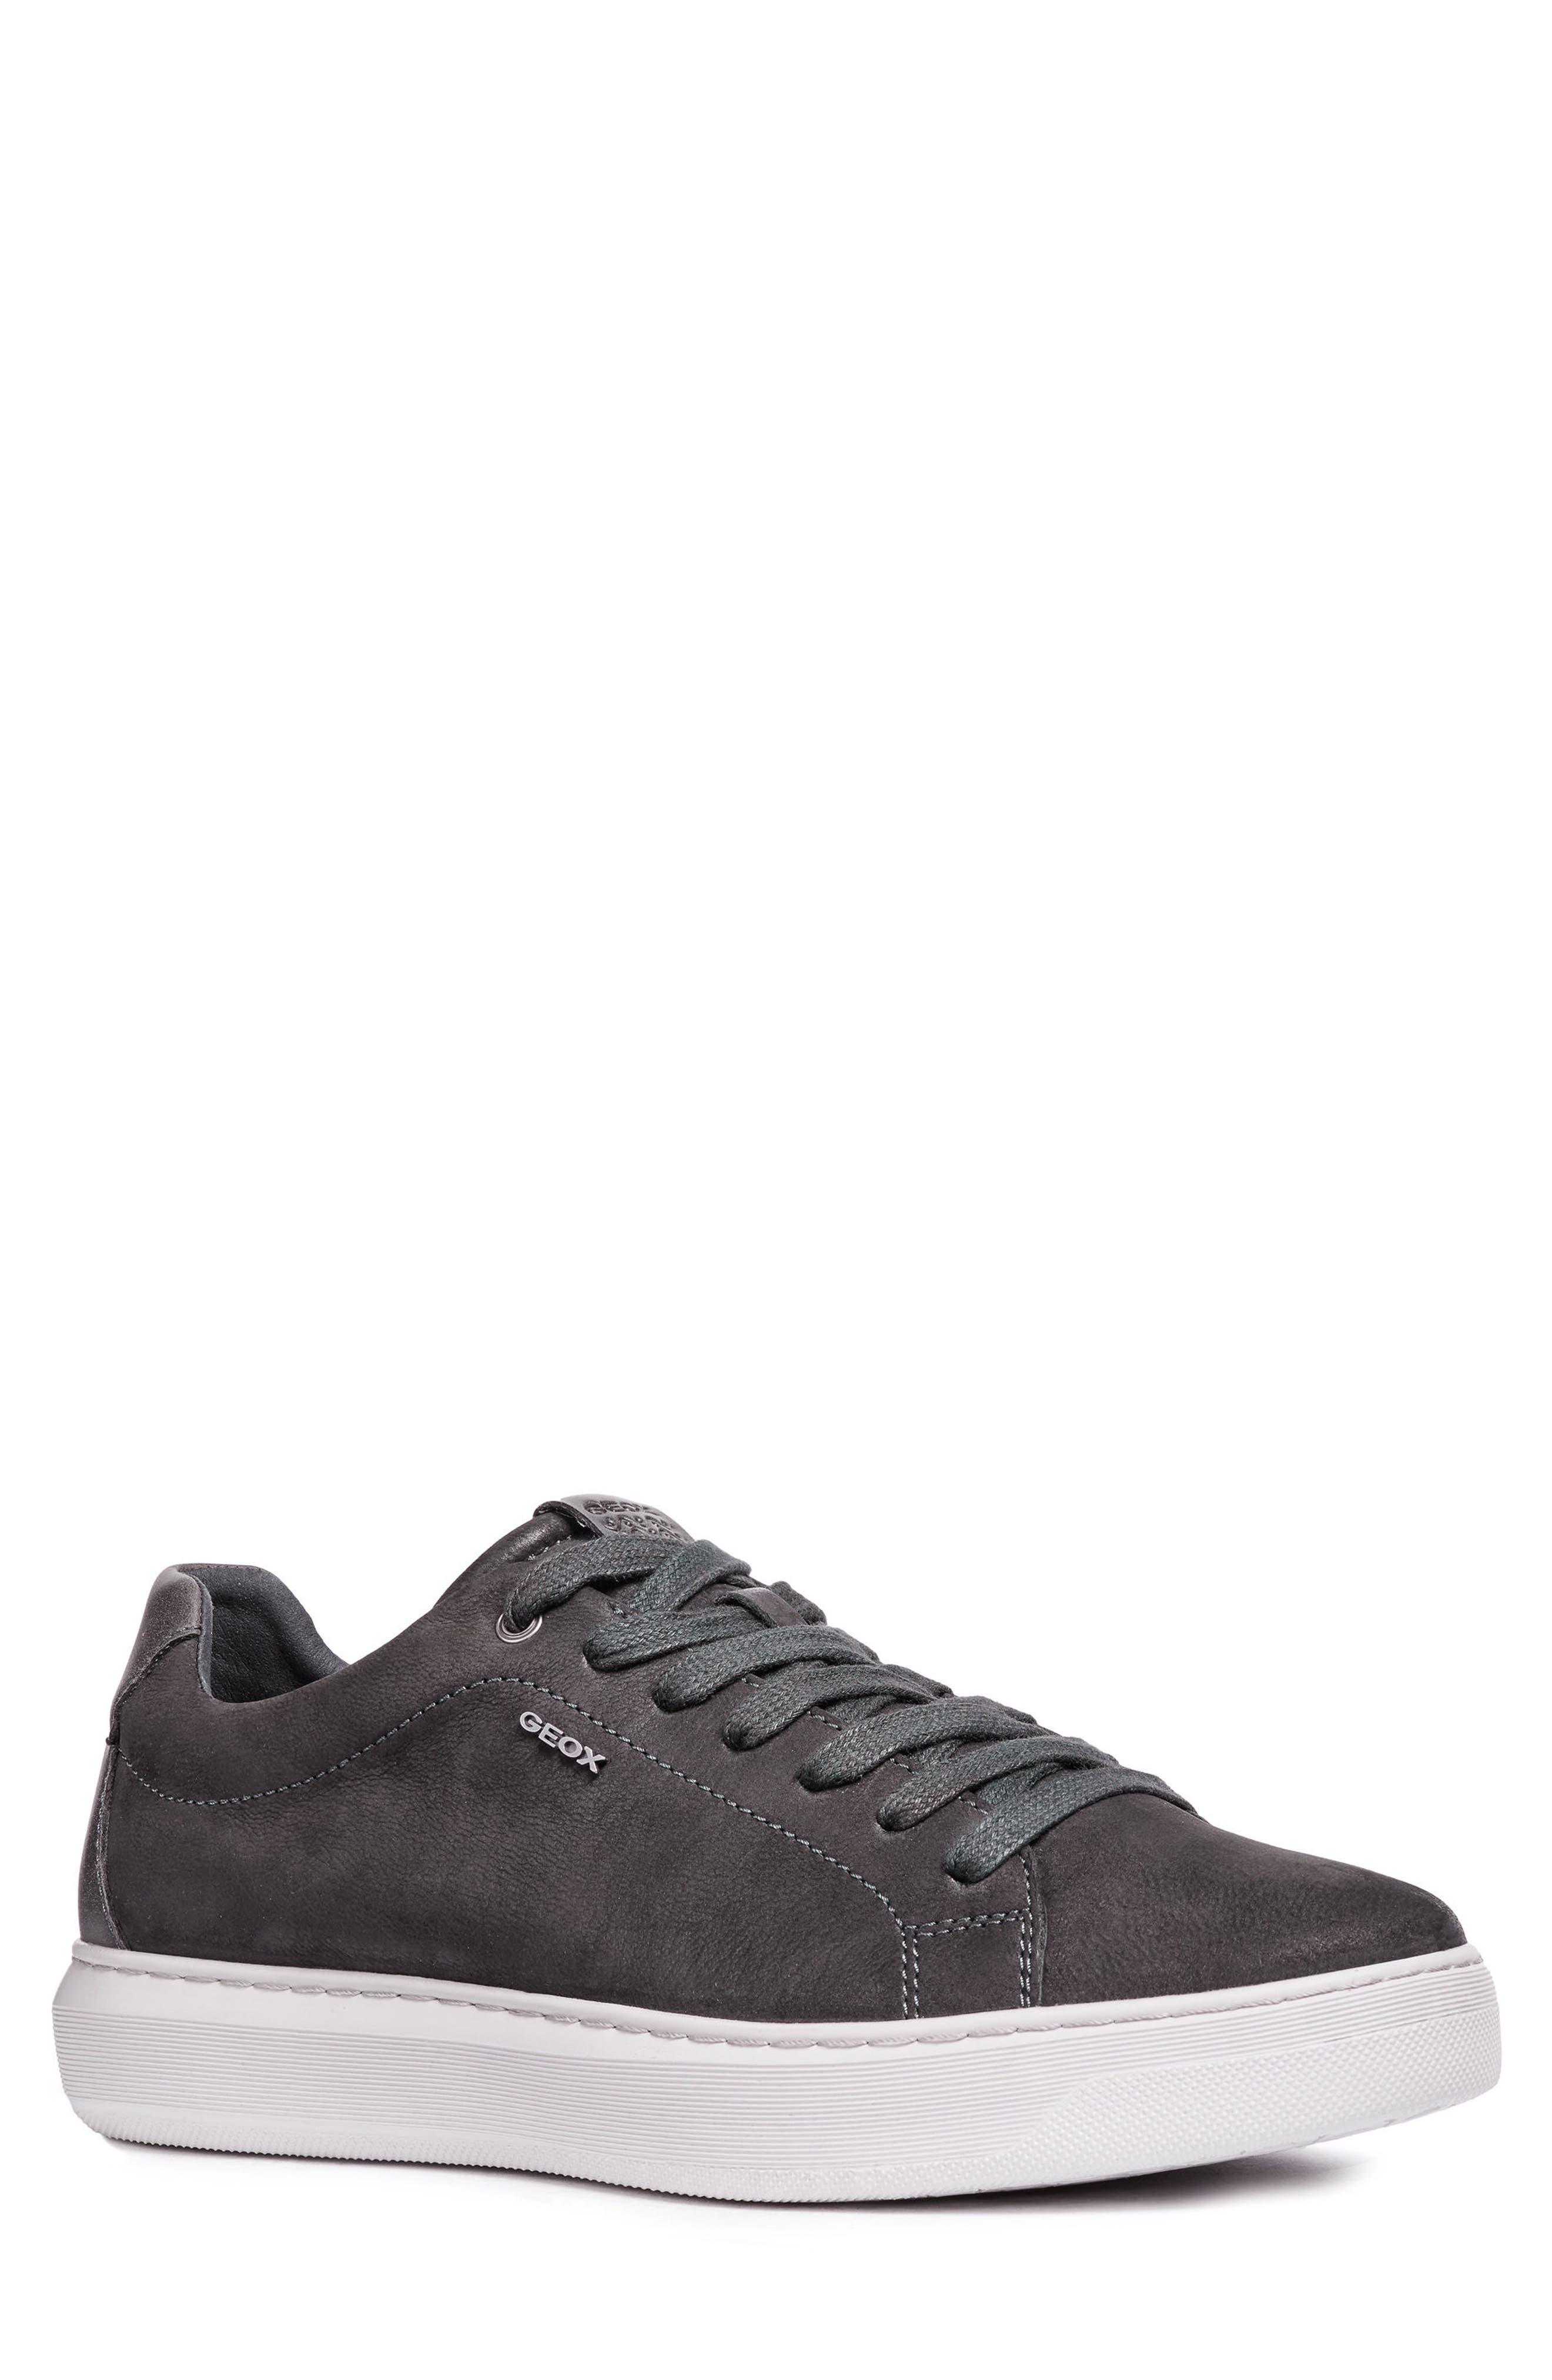 Deiven 5 Low Top Sneaker,                         Main,                         color, DARK JEANS LEATHER